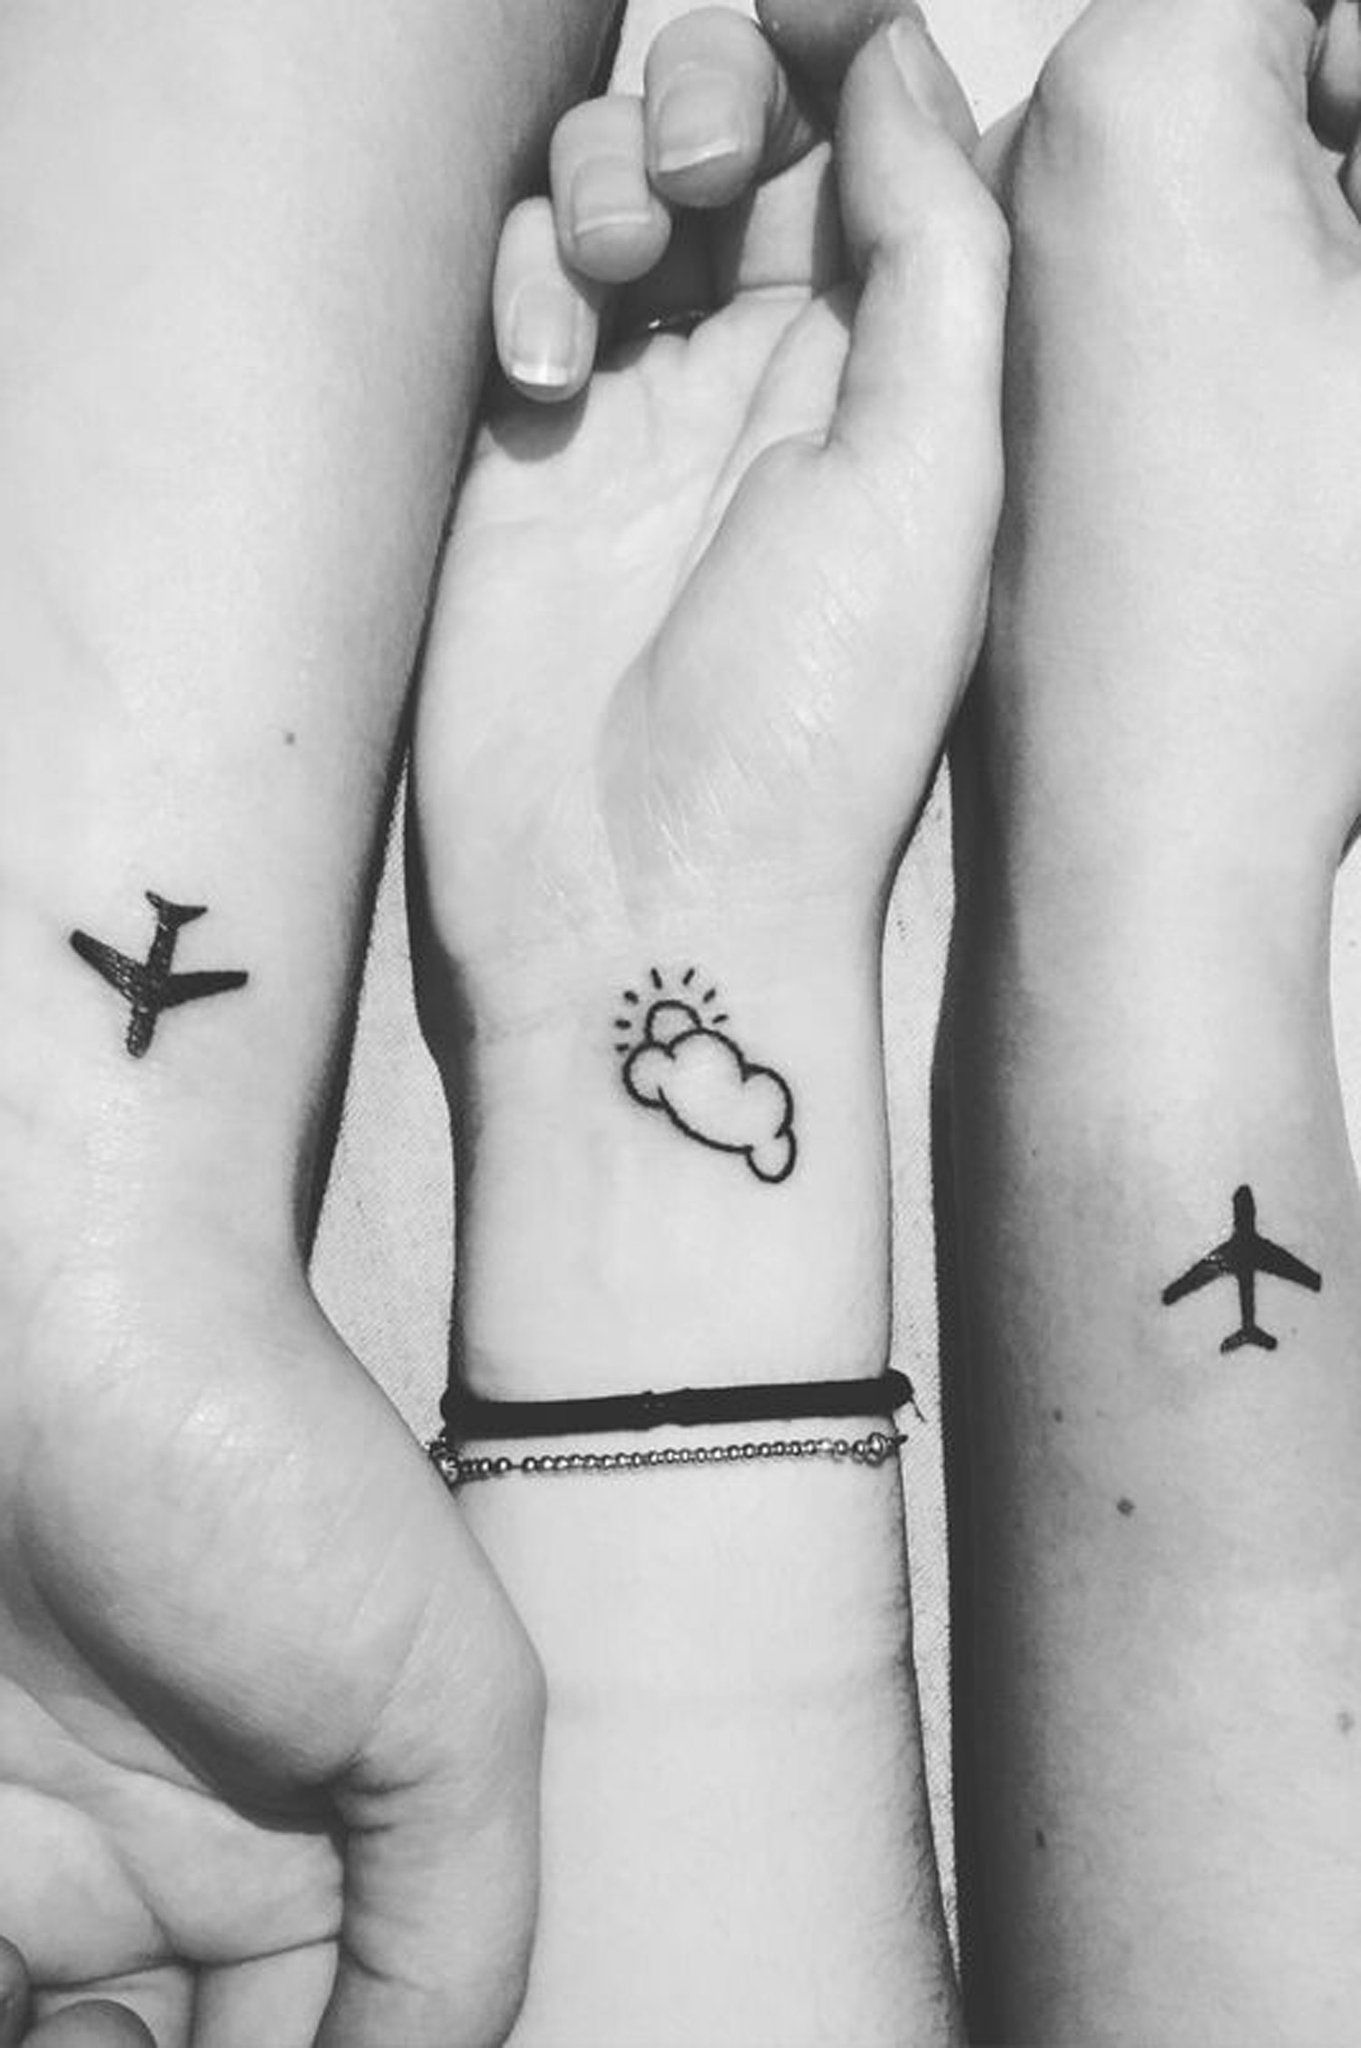 30 Free And Simple Small Tattoo Ideas For The Minimalist Cool Wrist Tattoos Wrist Tattoos For Women Cloud Tattoo